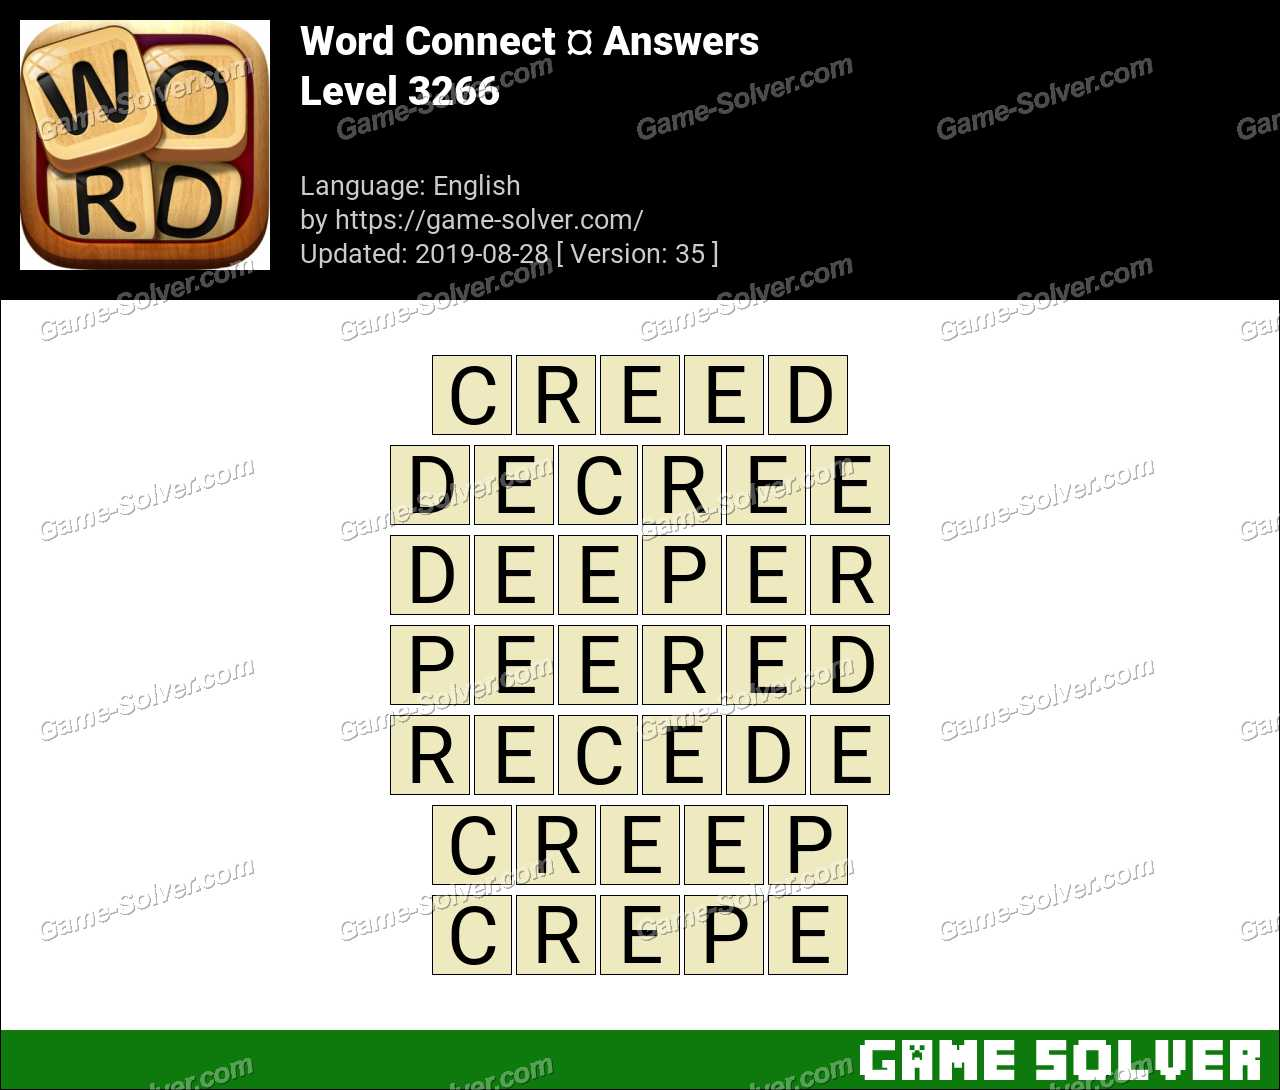 Word Connect Level 3266 Answers